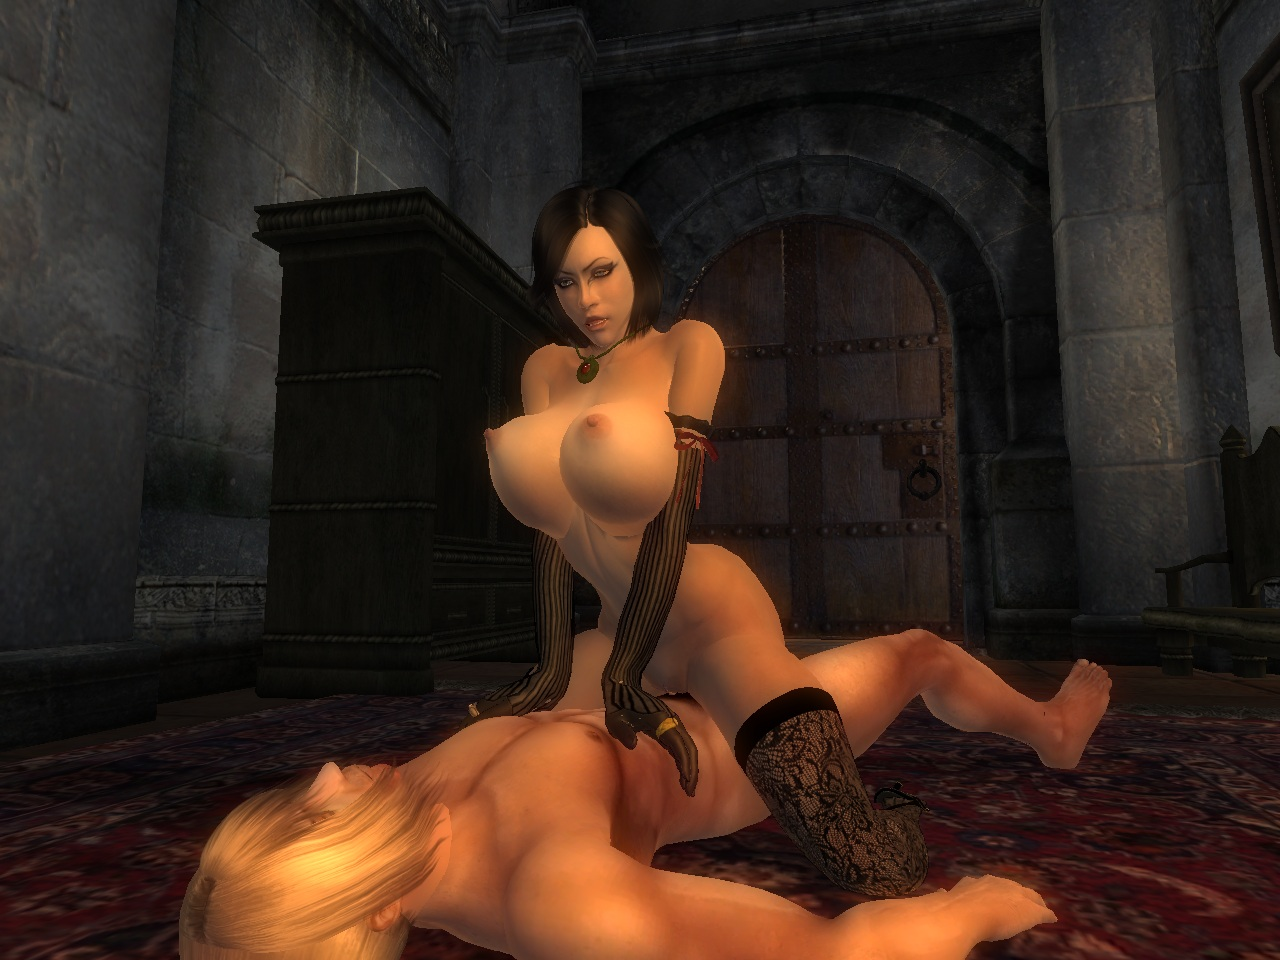 Oblivion sex animation nsfw videos